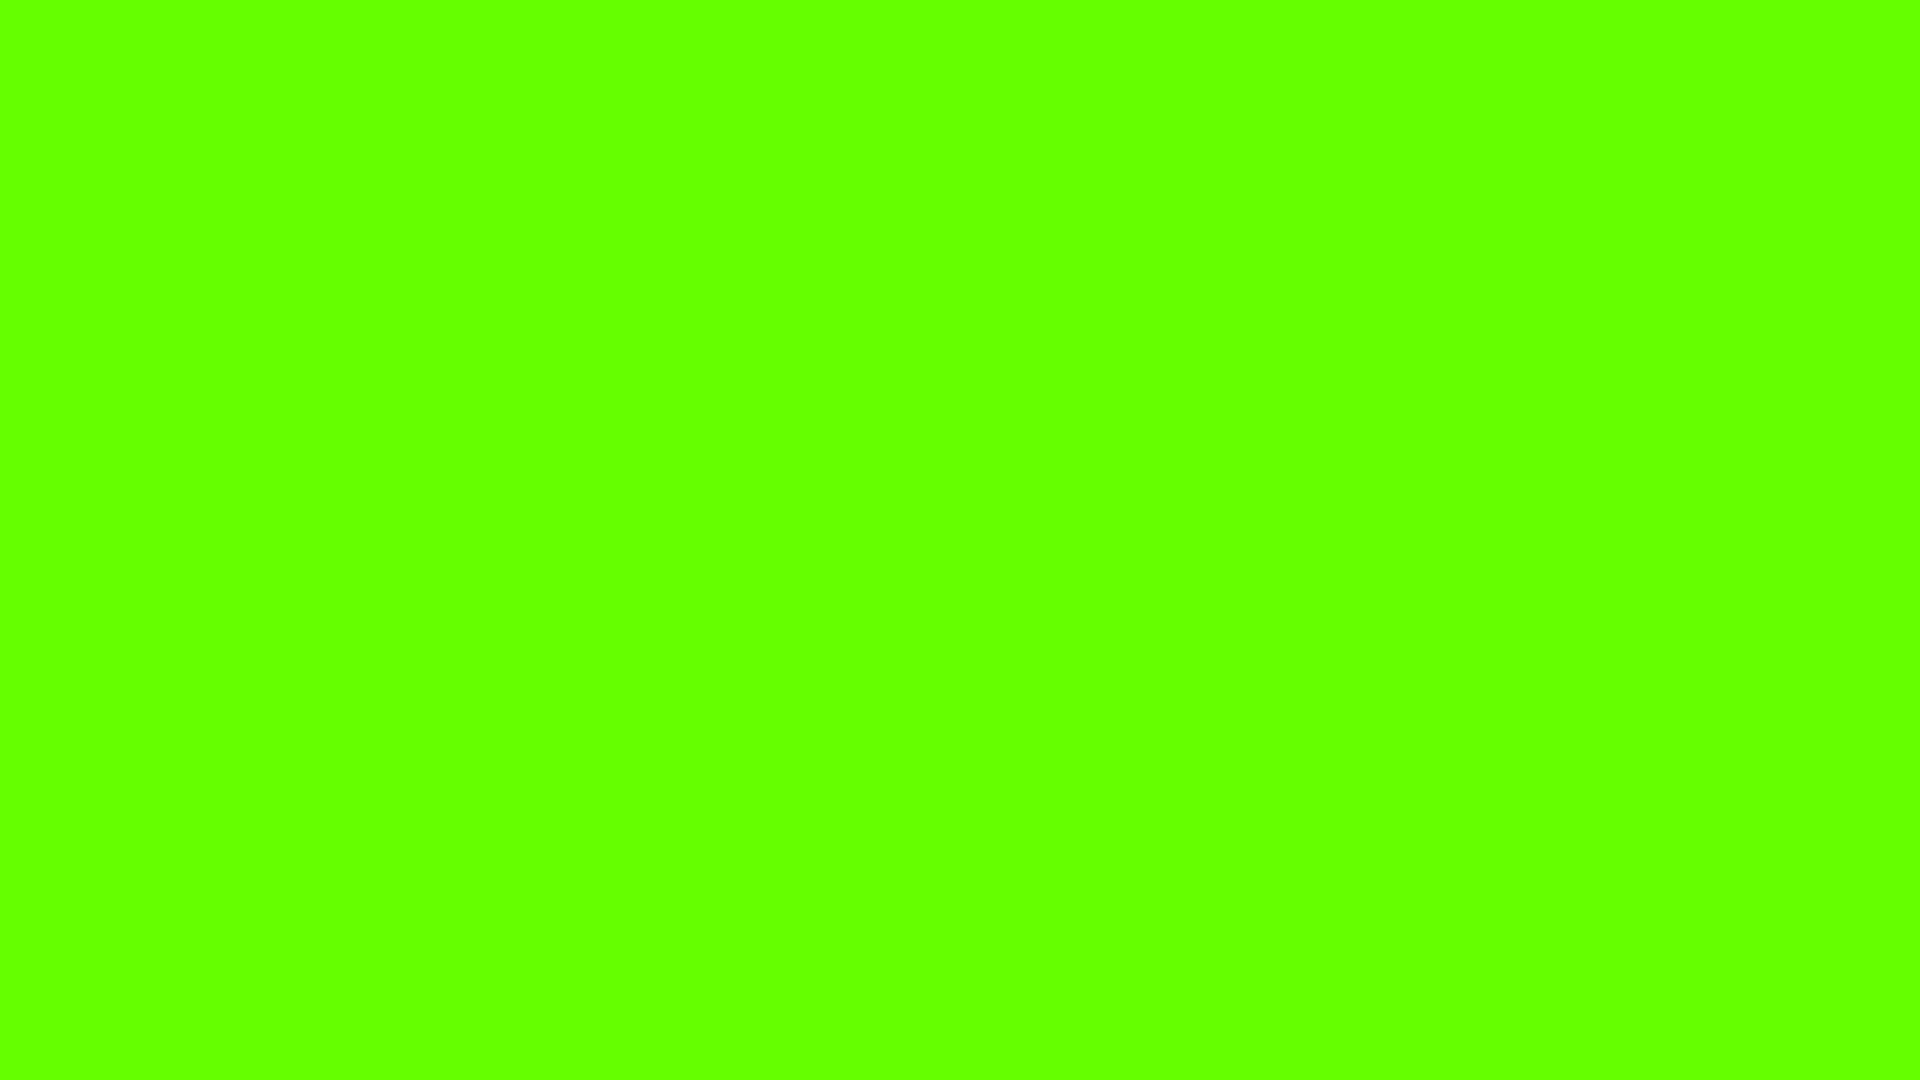 1920x1080 Bright Green Solid Color Background